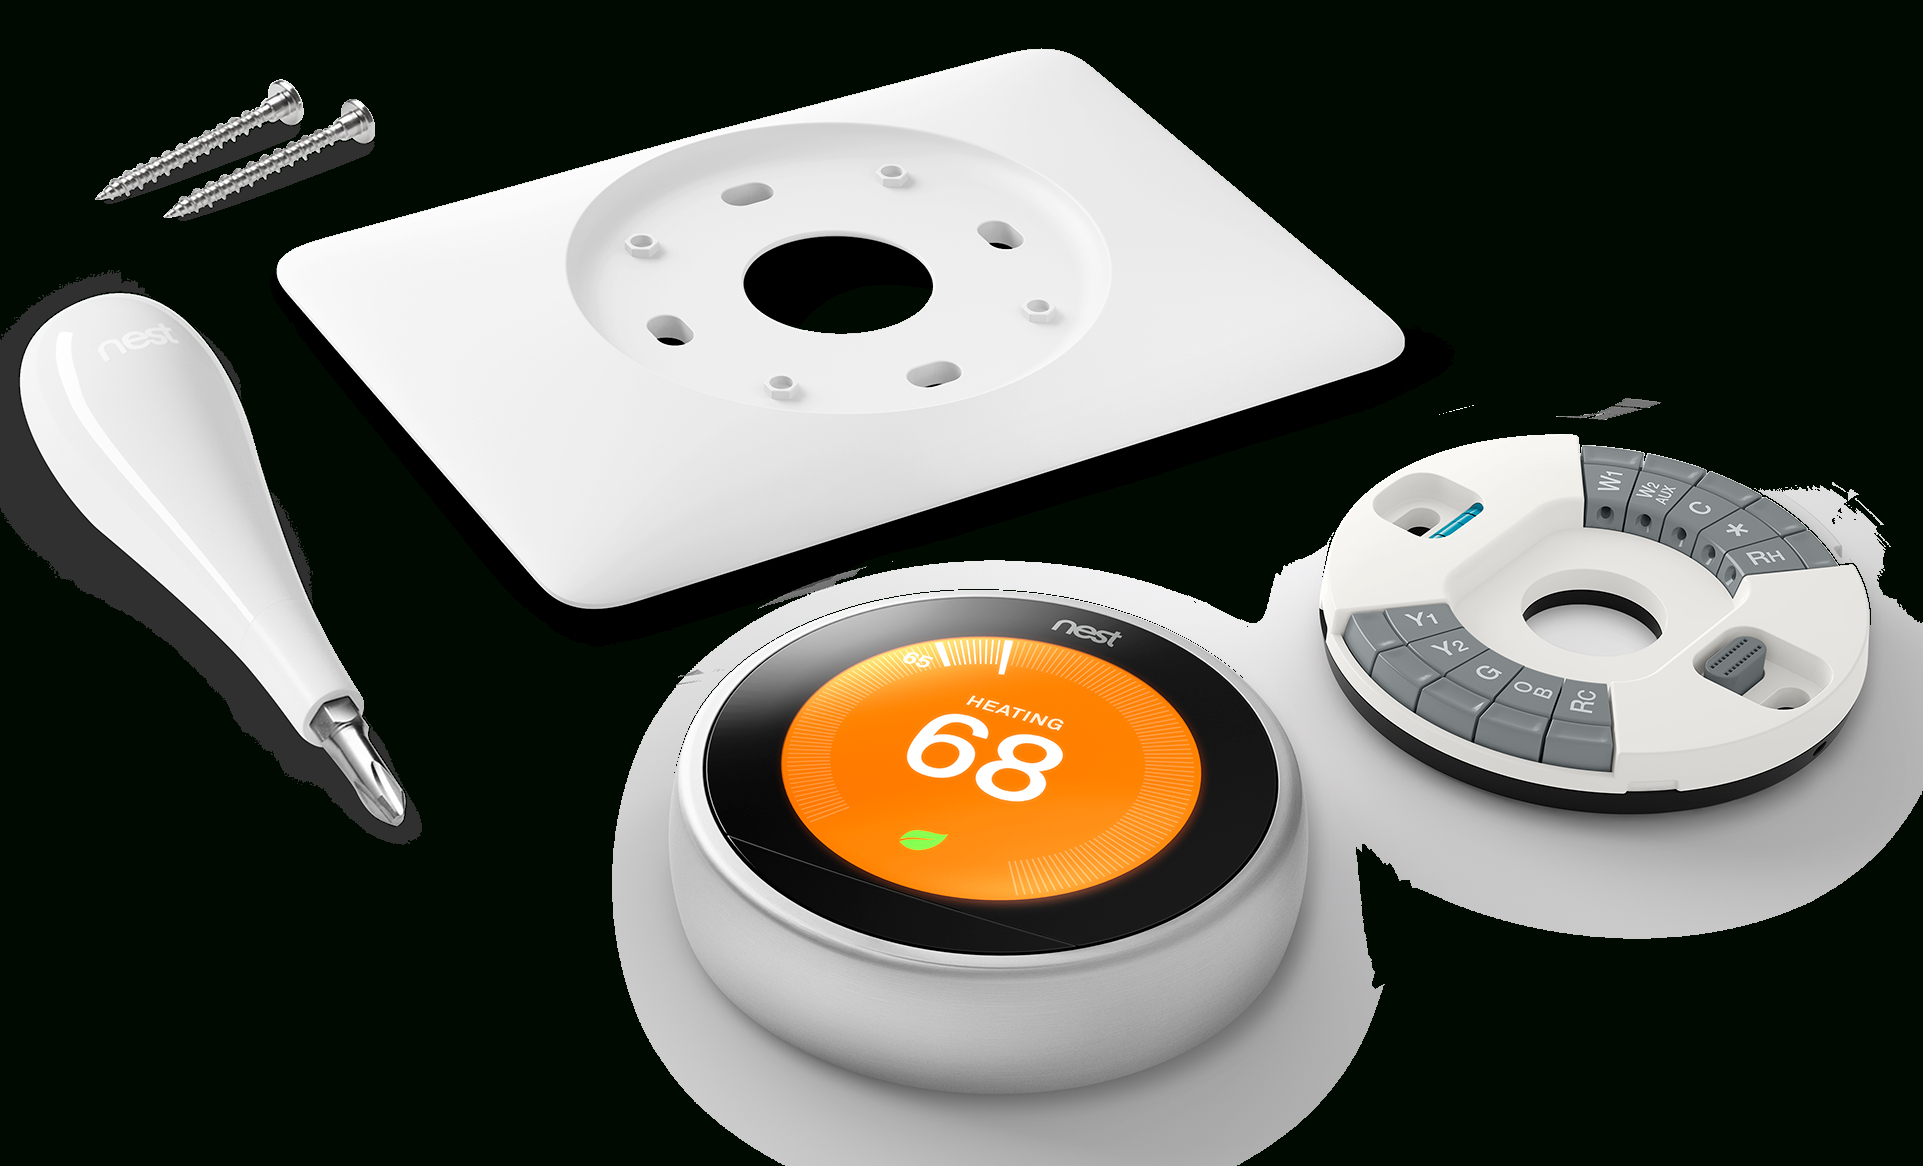 How To Install Your Nest Thermostat - Wiring Diagram Nest A0013 Black